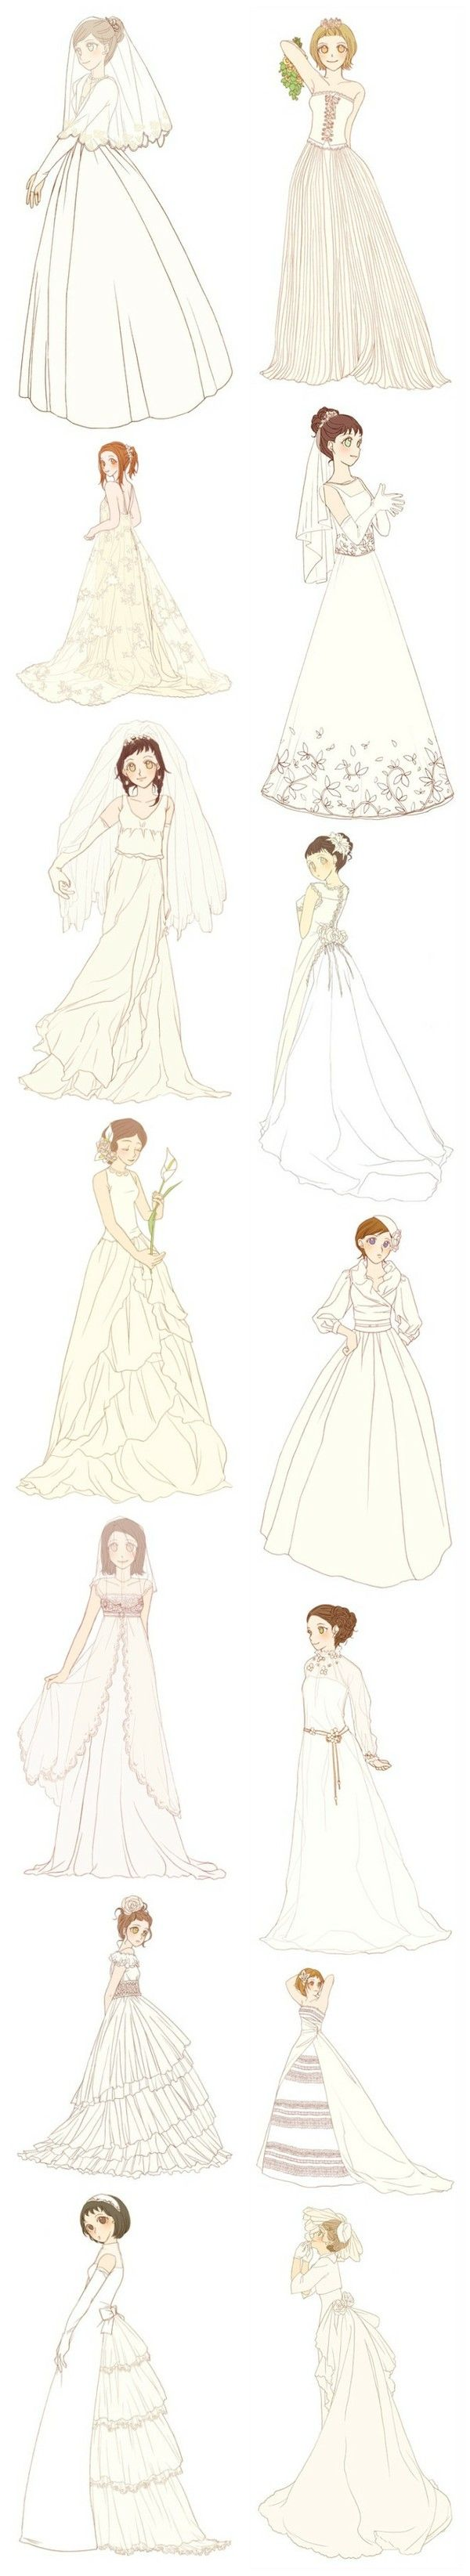 Anime girls wearing wedding dresses / gowns - Reference for Artists